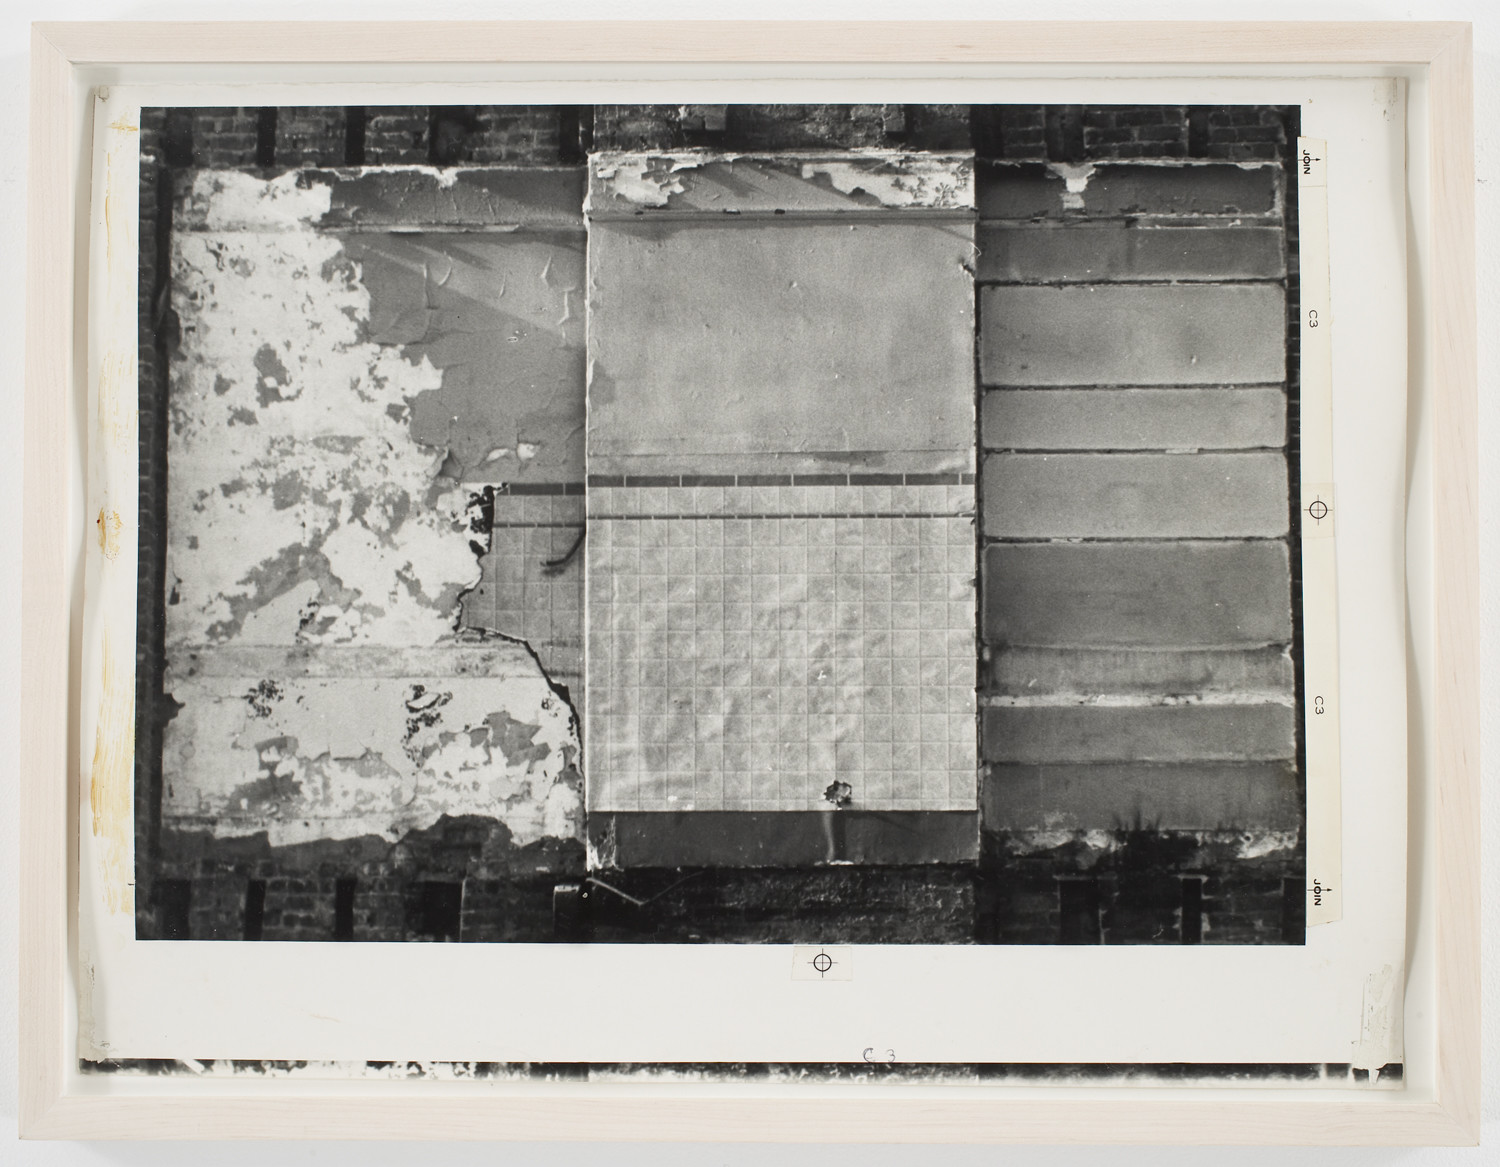 Gordon Matta-Clark's 'Walls' is just one of more than 100 pieces of the artist's work on display at The Bronx Museum of the Arts through April 8.